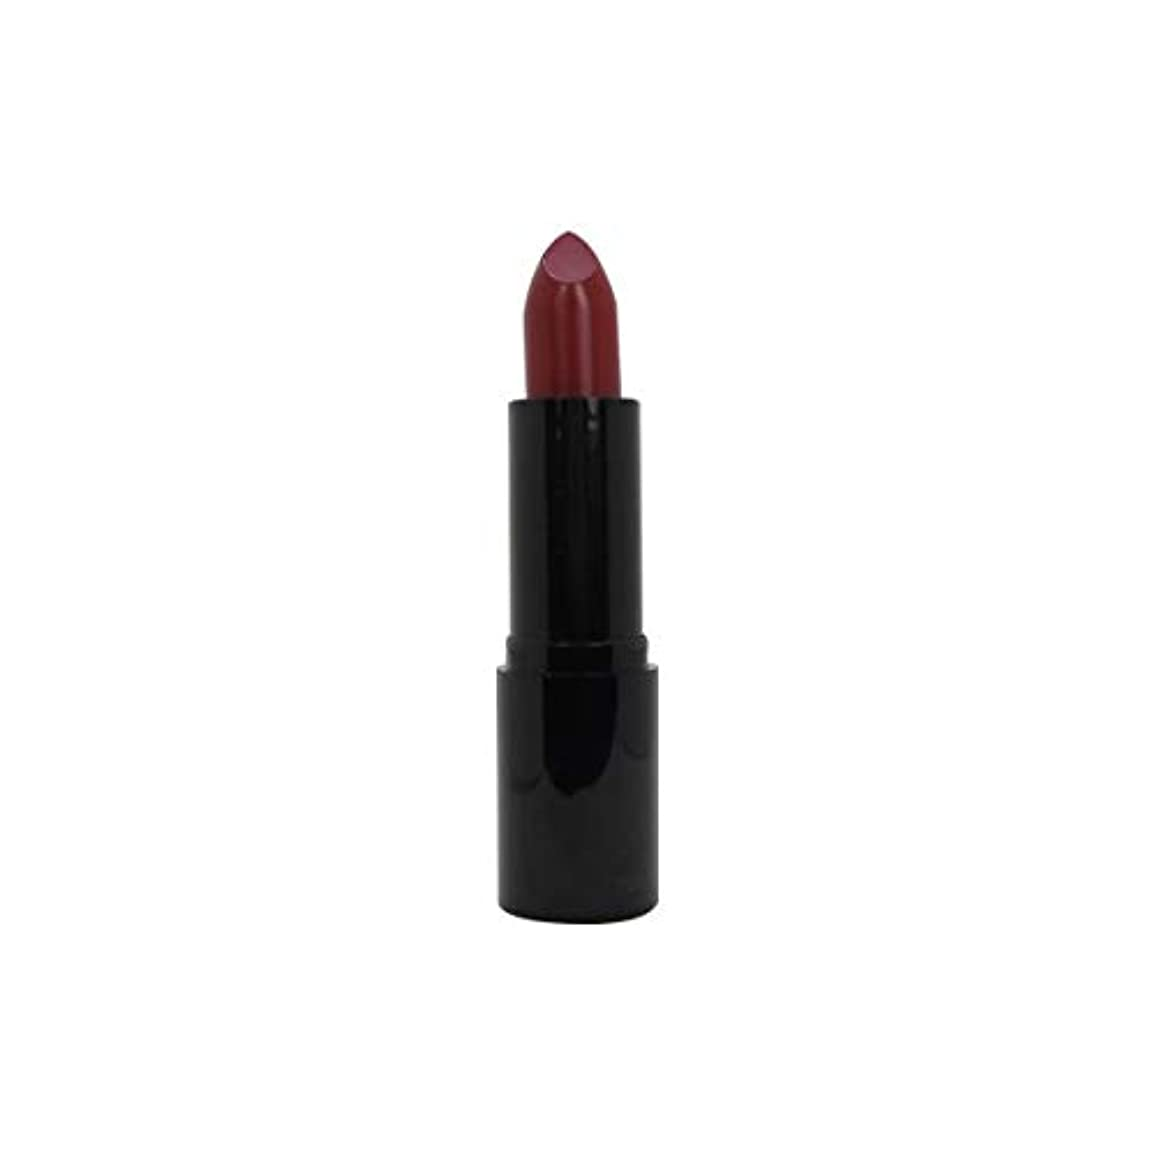 Skinerie The Collection Lipstick 10 Late Night Rouge 3,5g